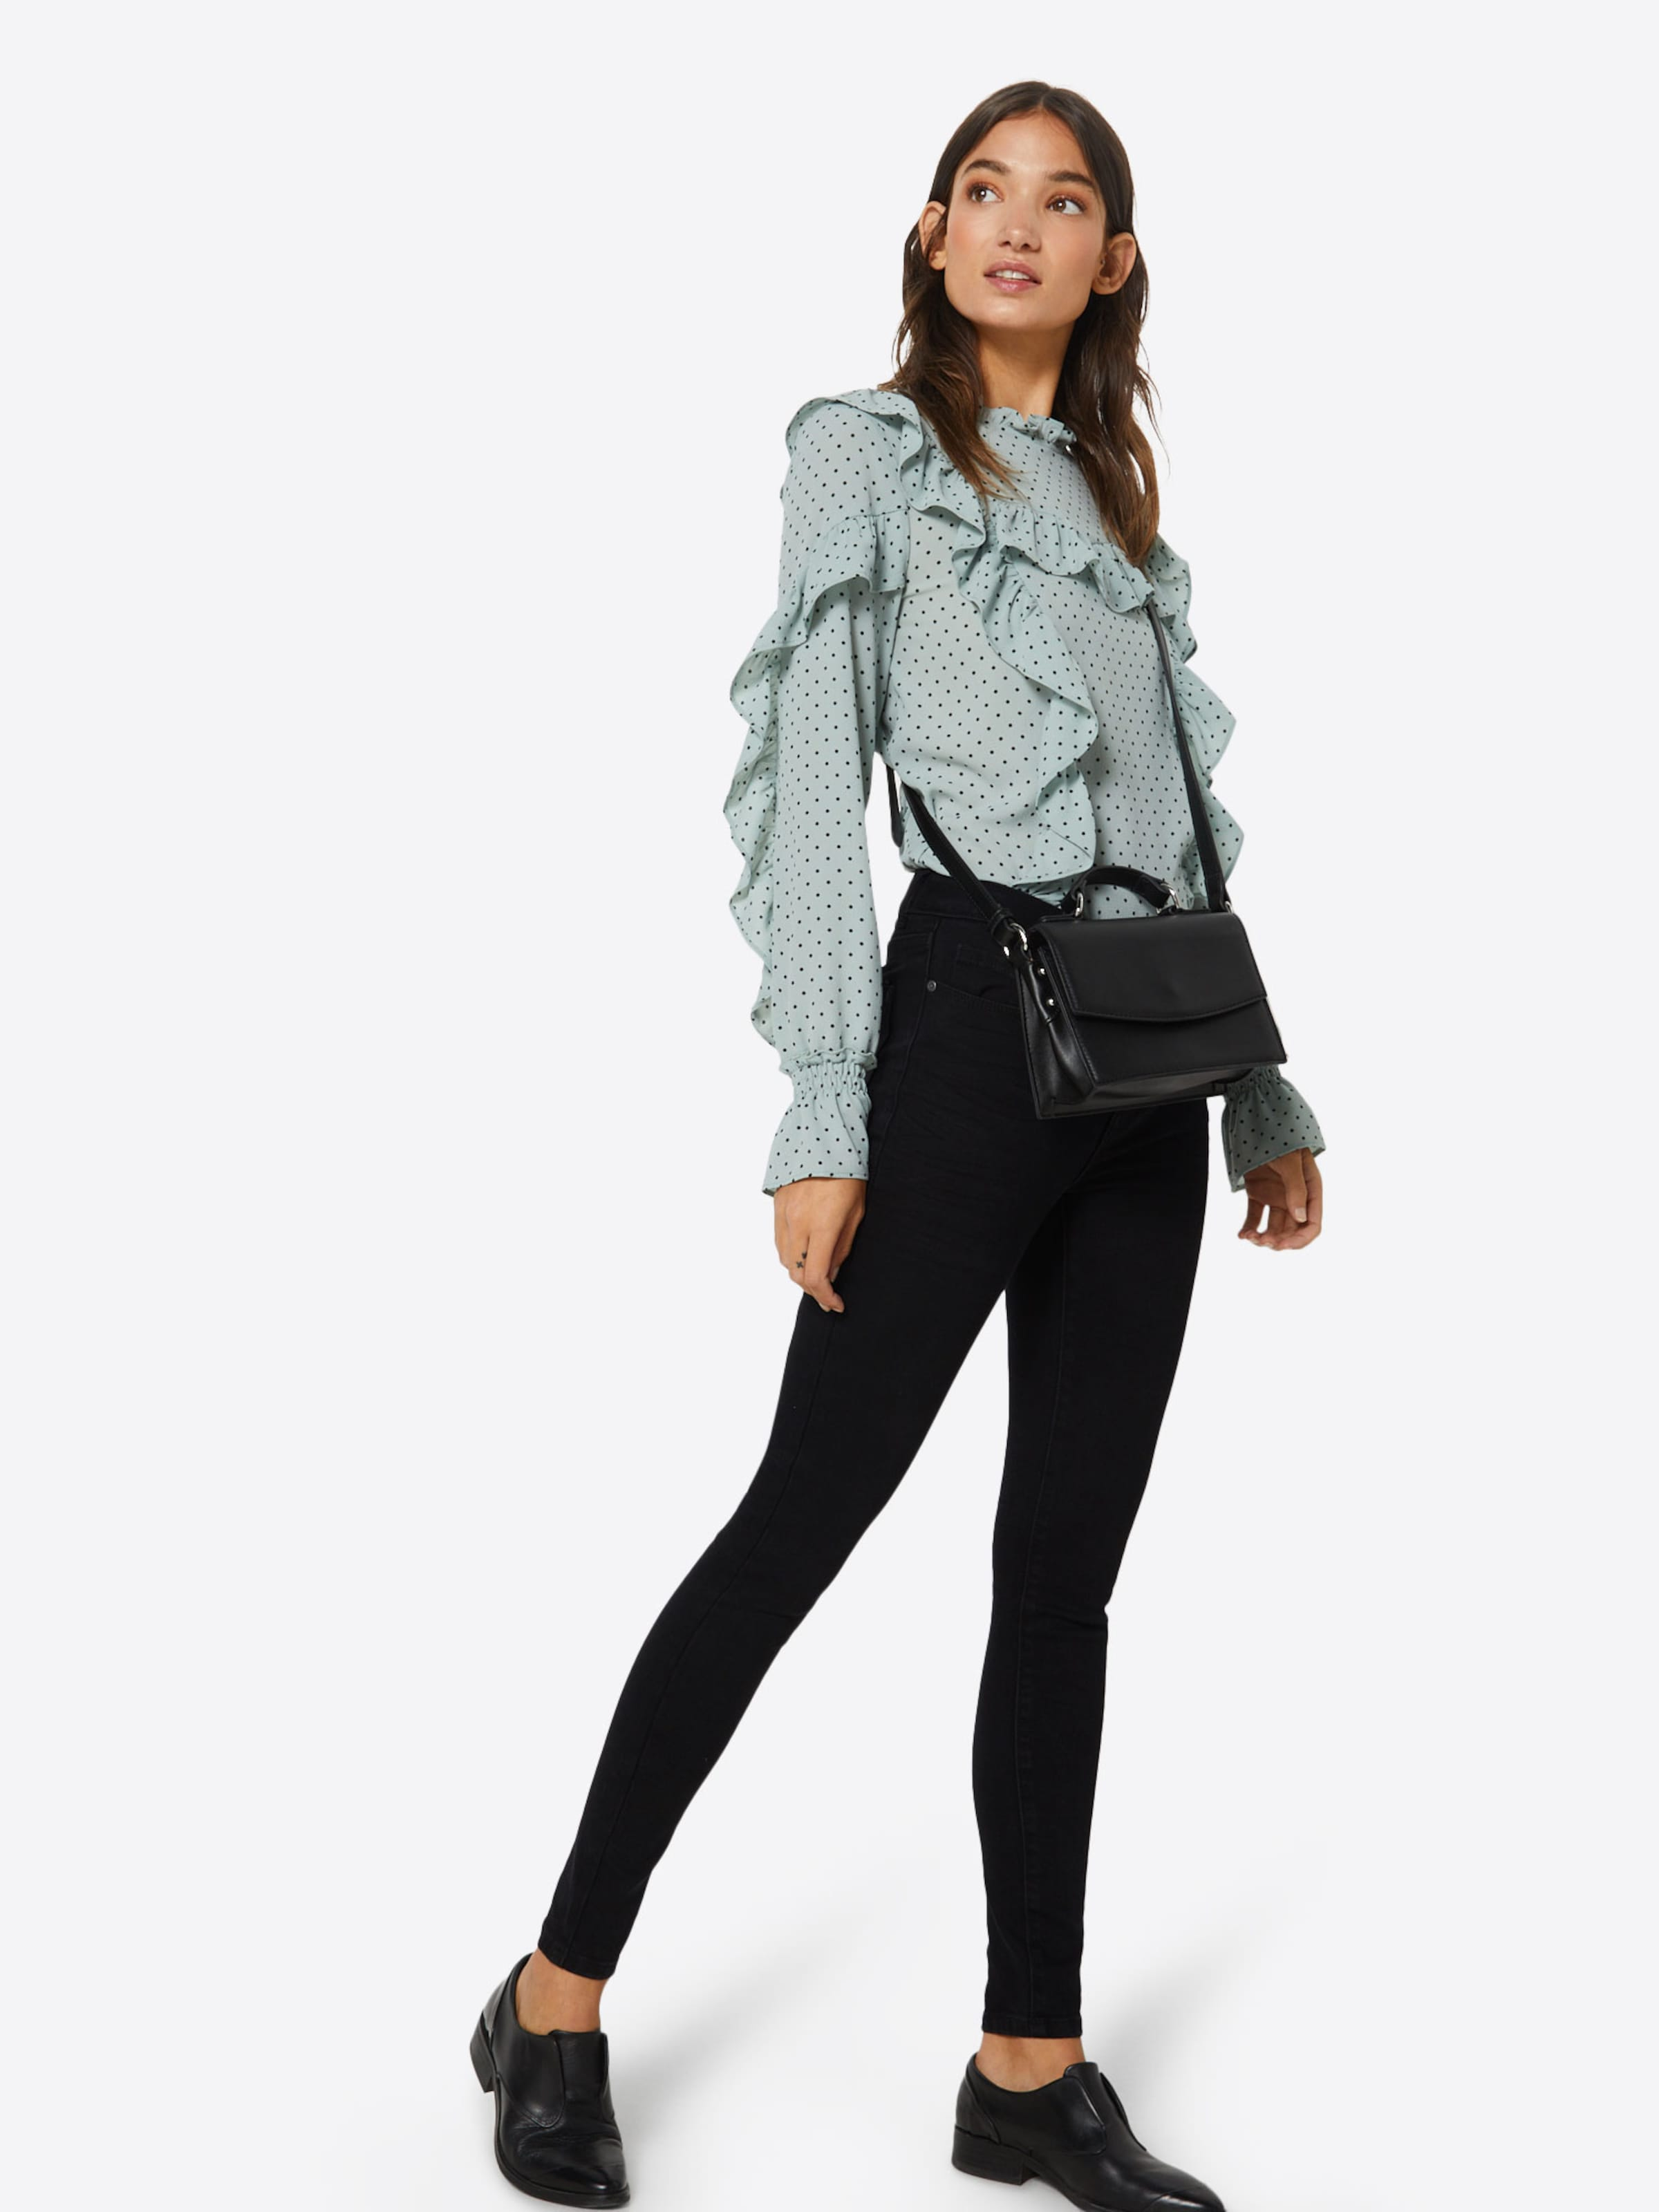 Noir Jean En Denim Object Object kXuZTwPiOl